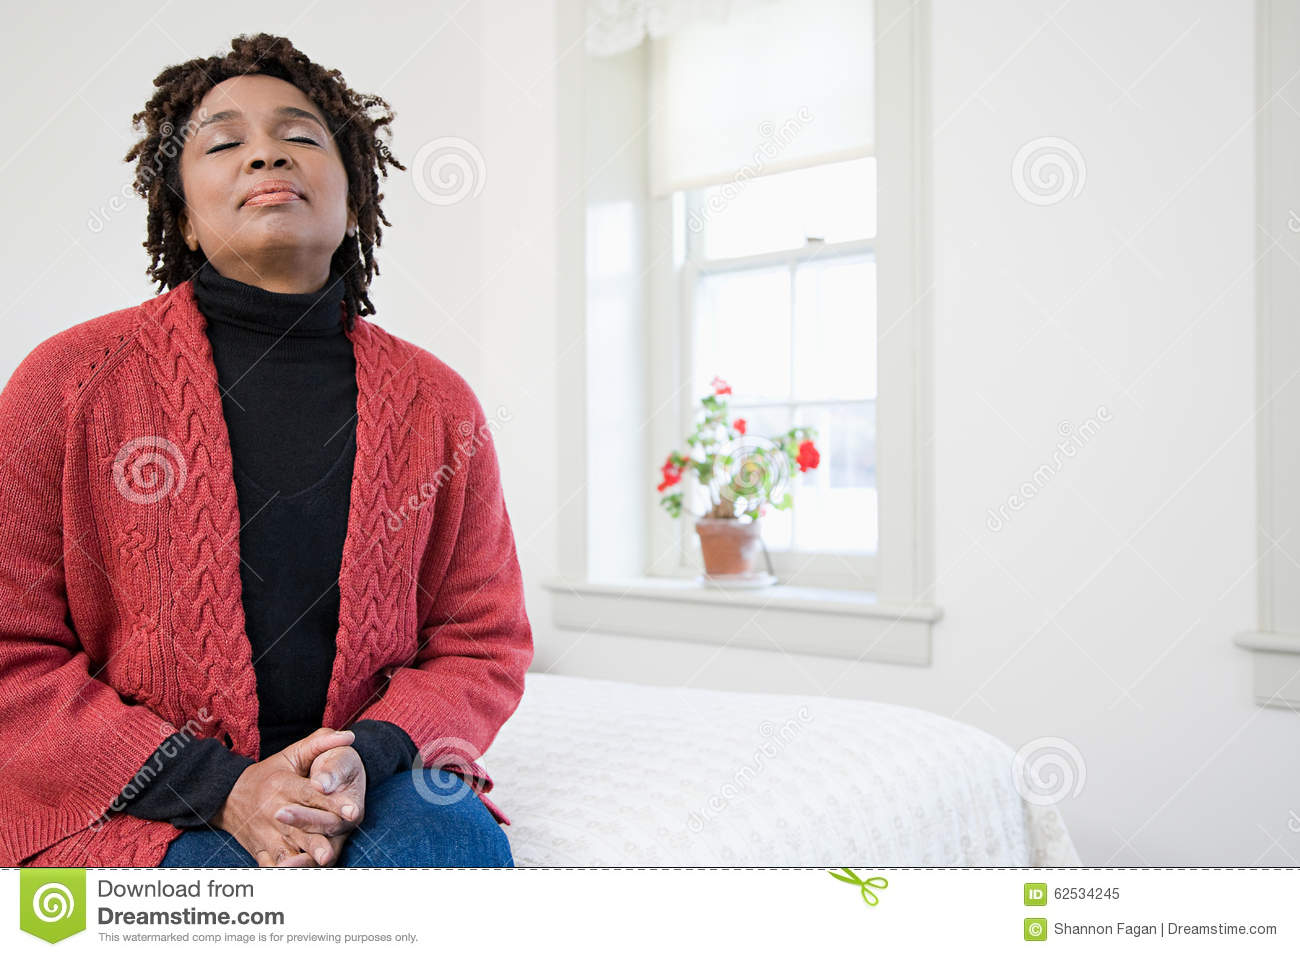 One woman with her eyes closed